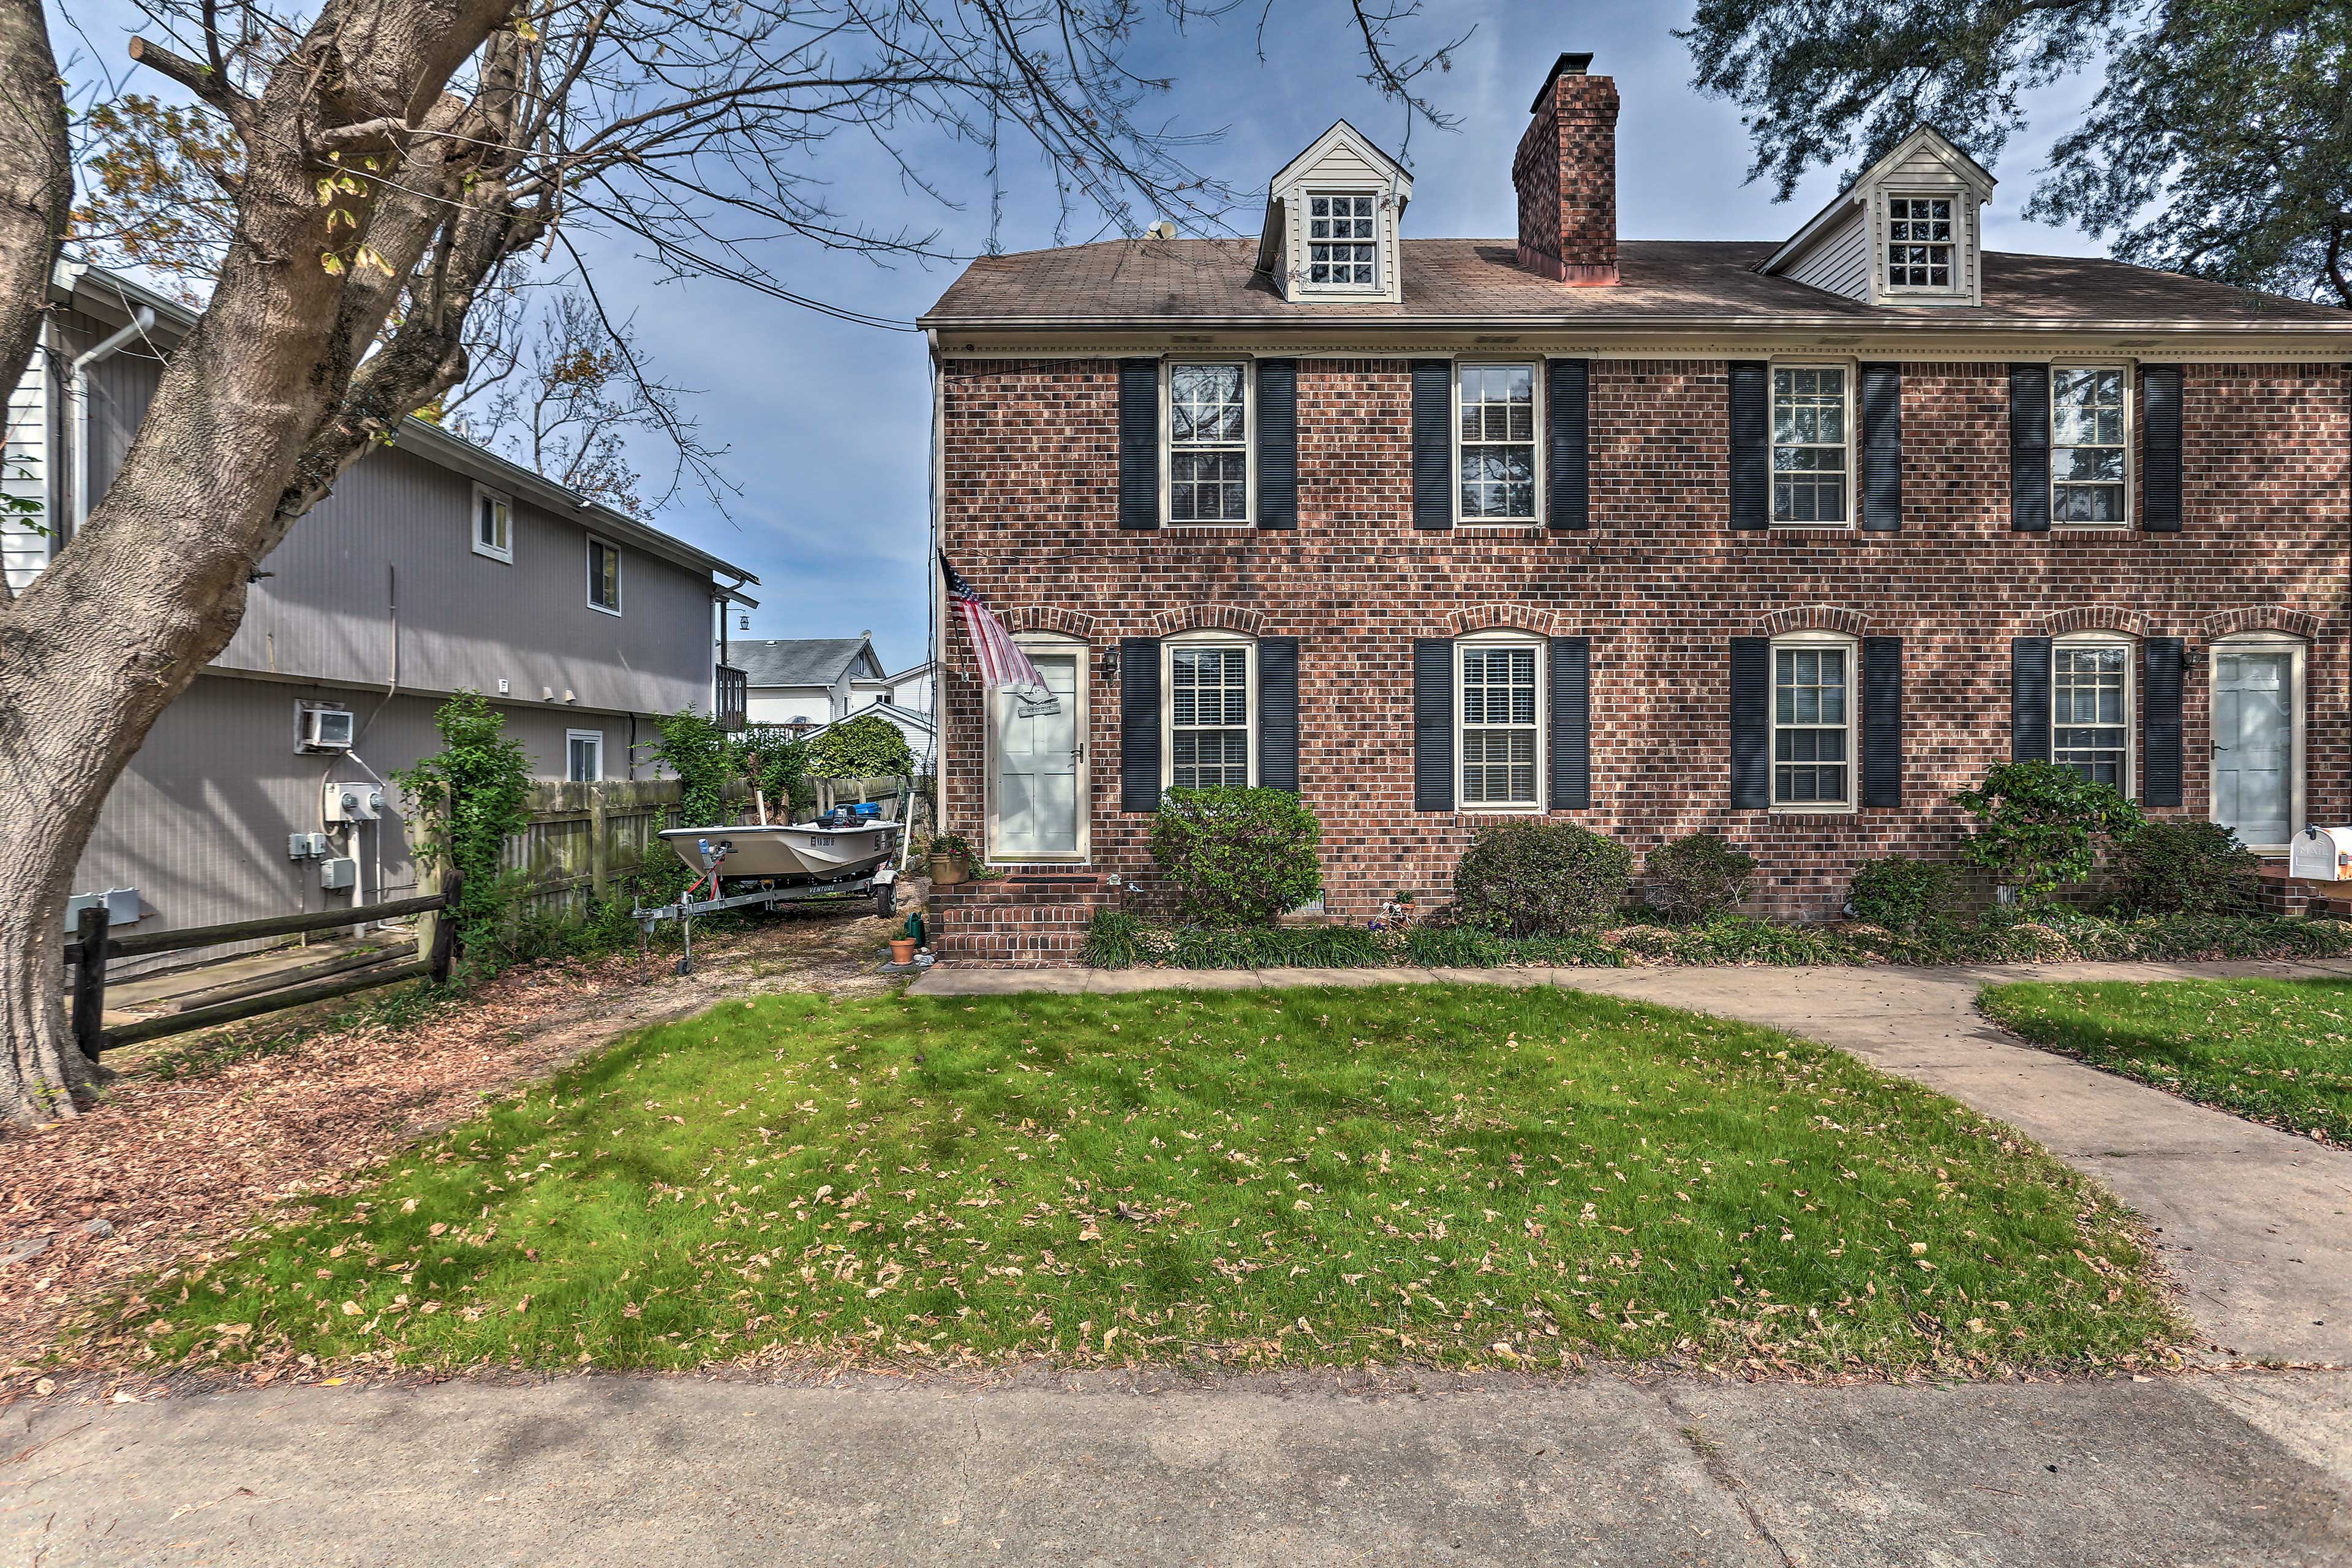 Take a trip to Virginia Beach and stay at this vacation rental townhouse!